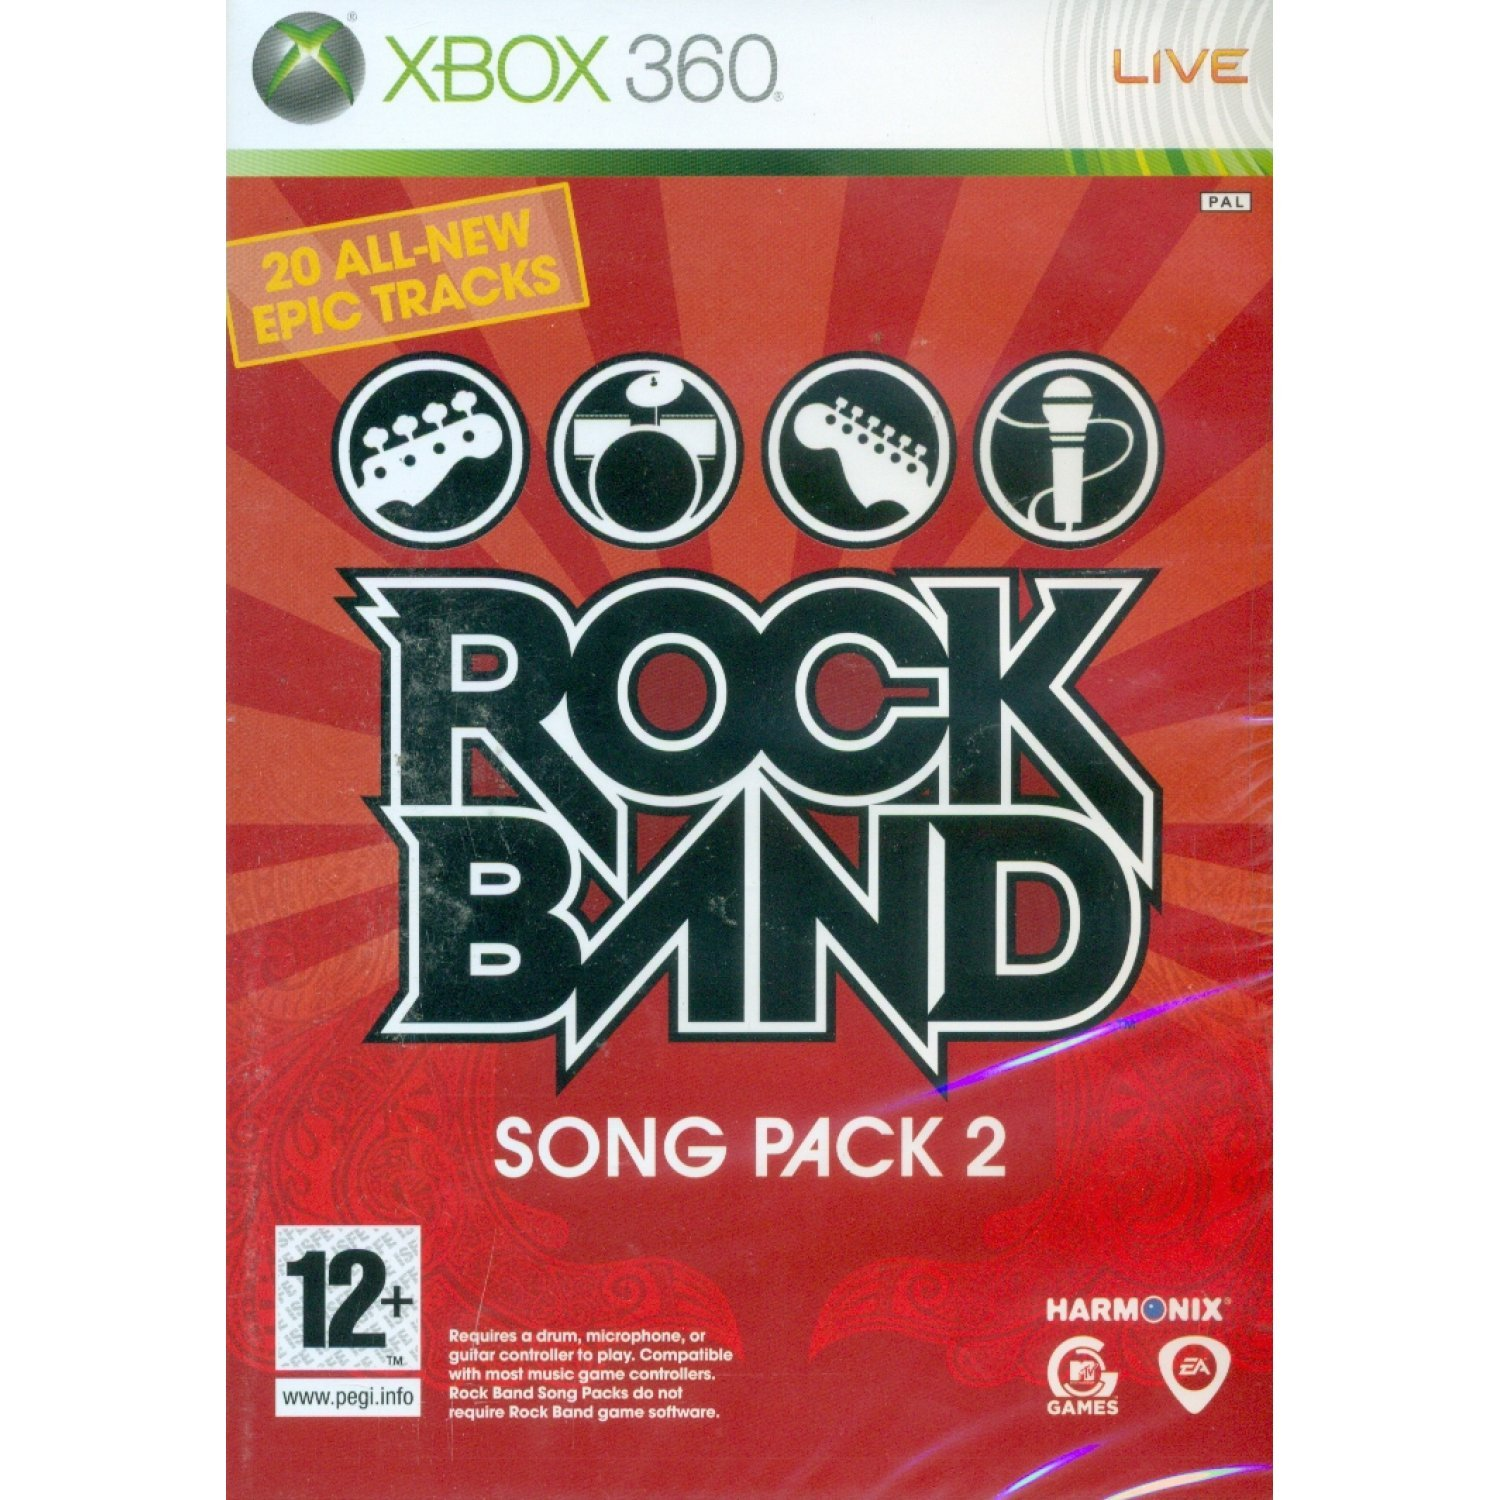 Rock Band Song Pack 2 2328012o36p2i